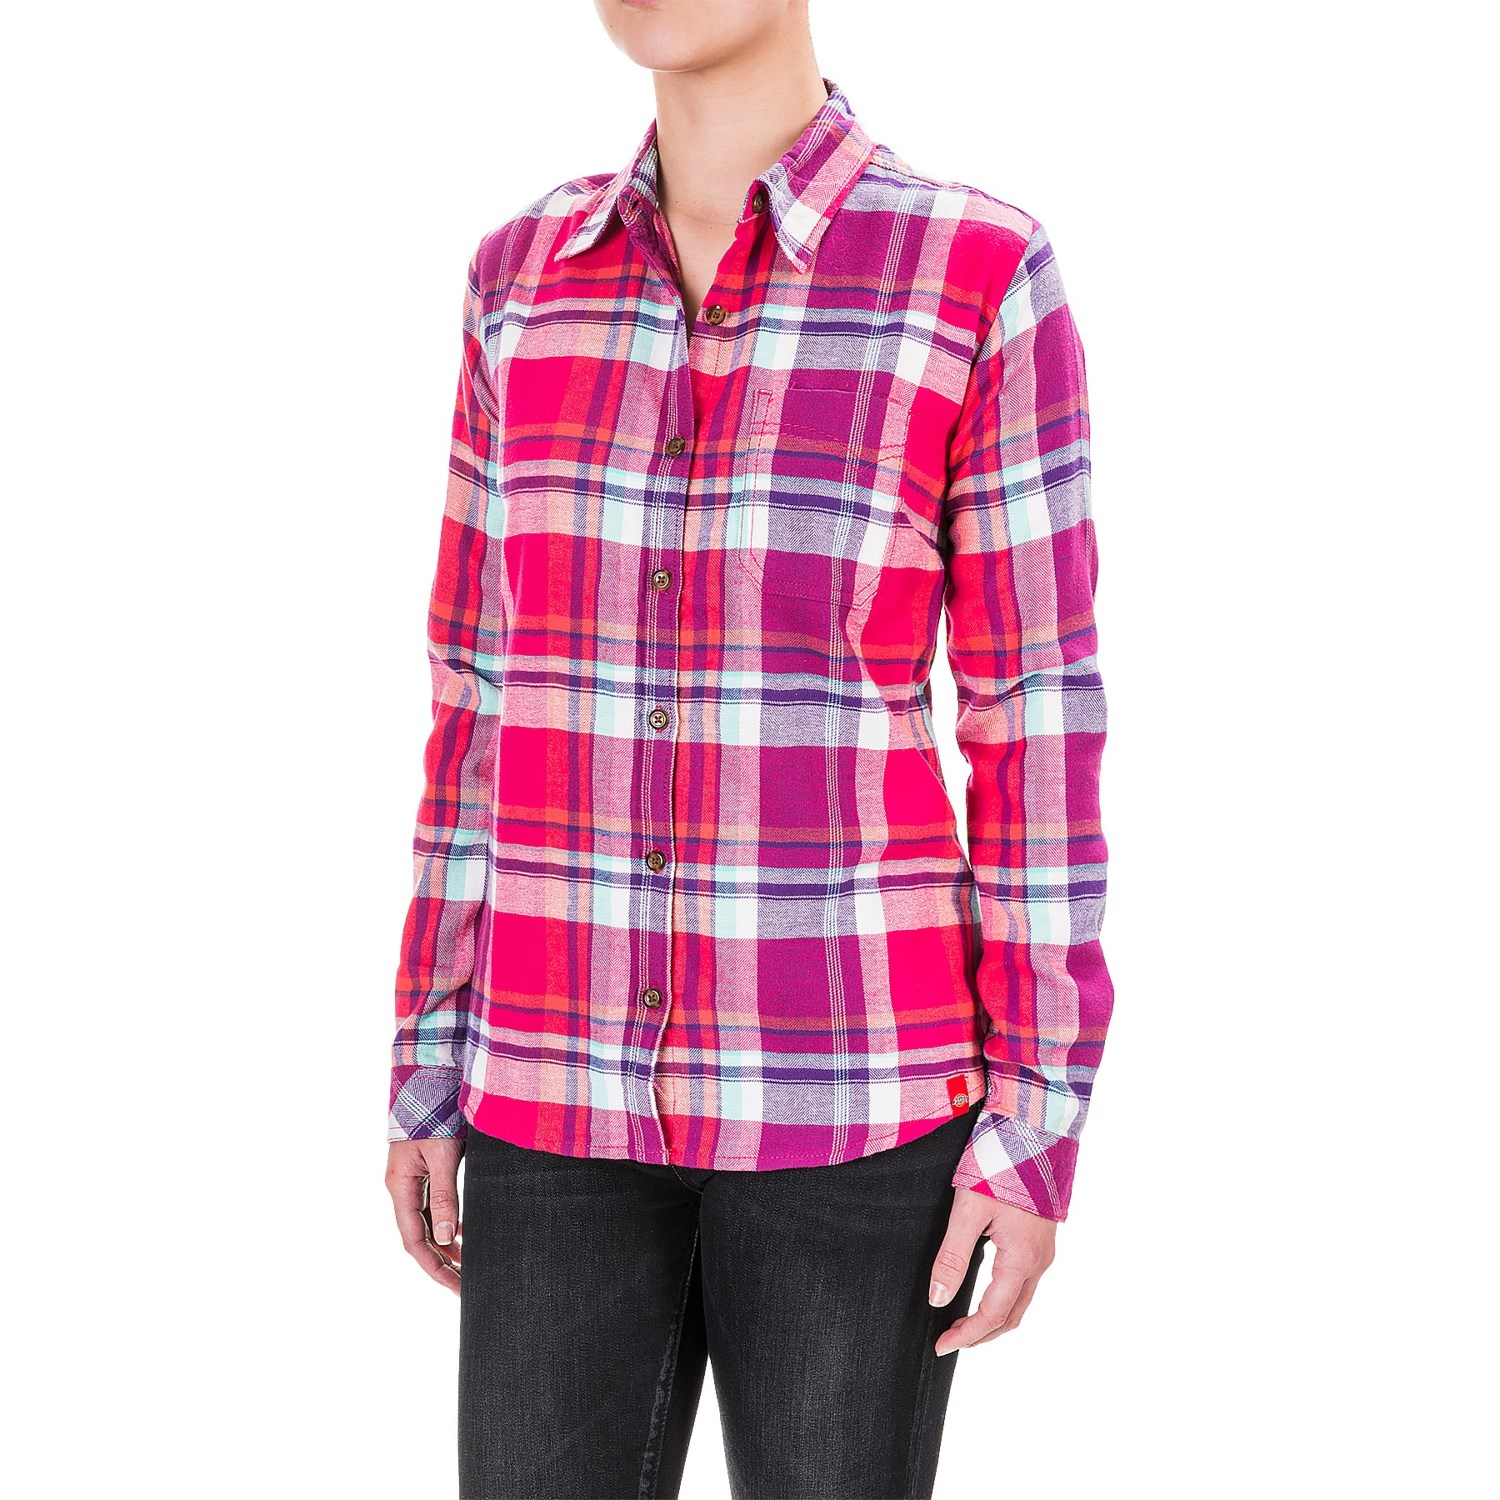 Pink flannel shirt custom shirt for Girl in flannel shirt